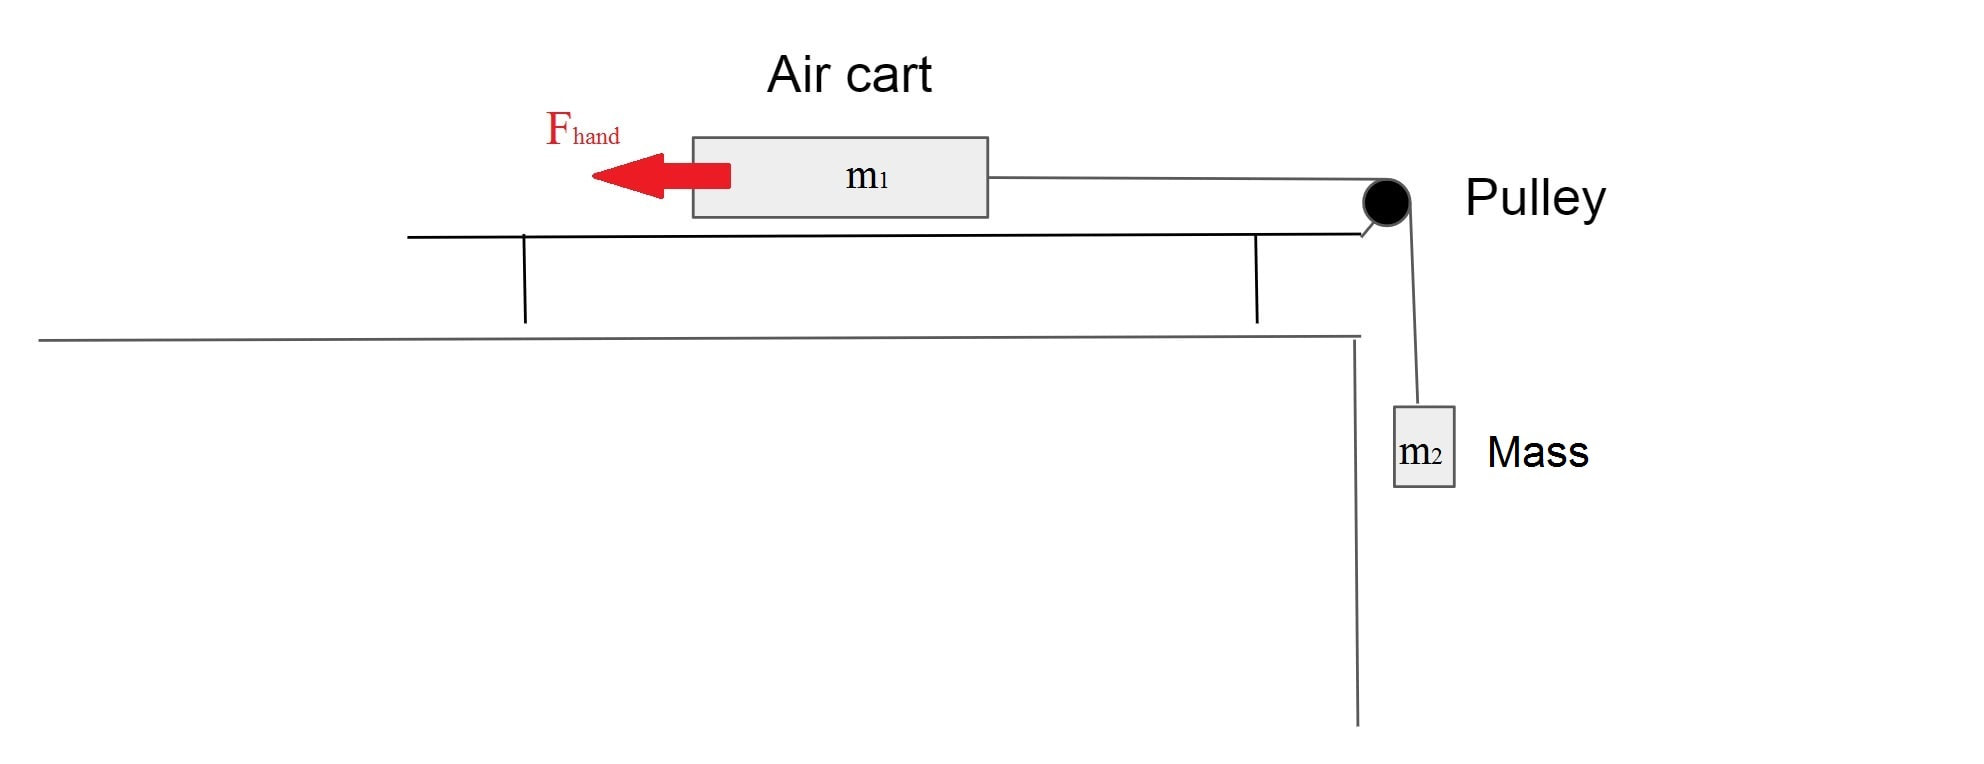 hight resolution of  as well as using free body diagrams to calculate the acceleration experienced by an object with a force acting on it to do so consider the following